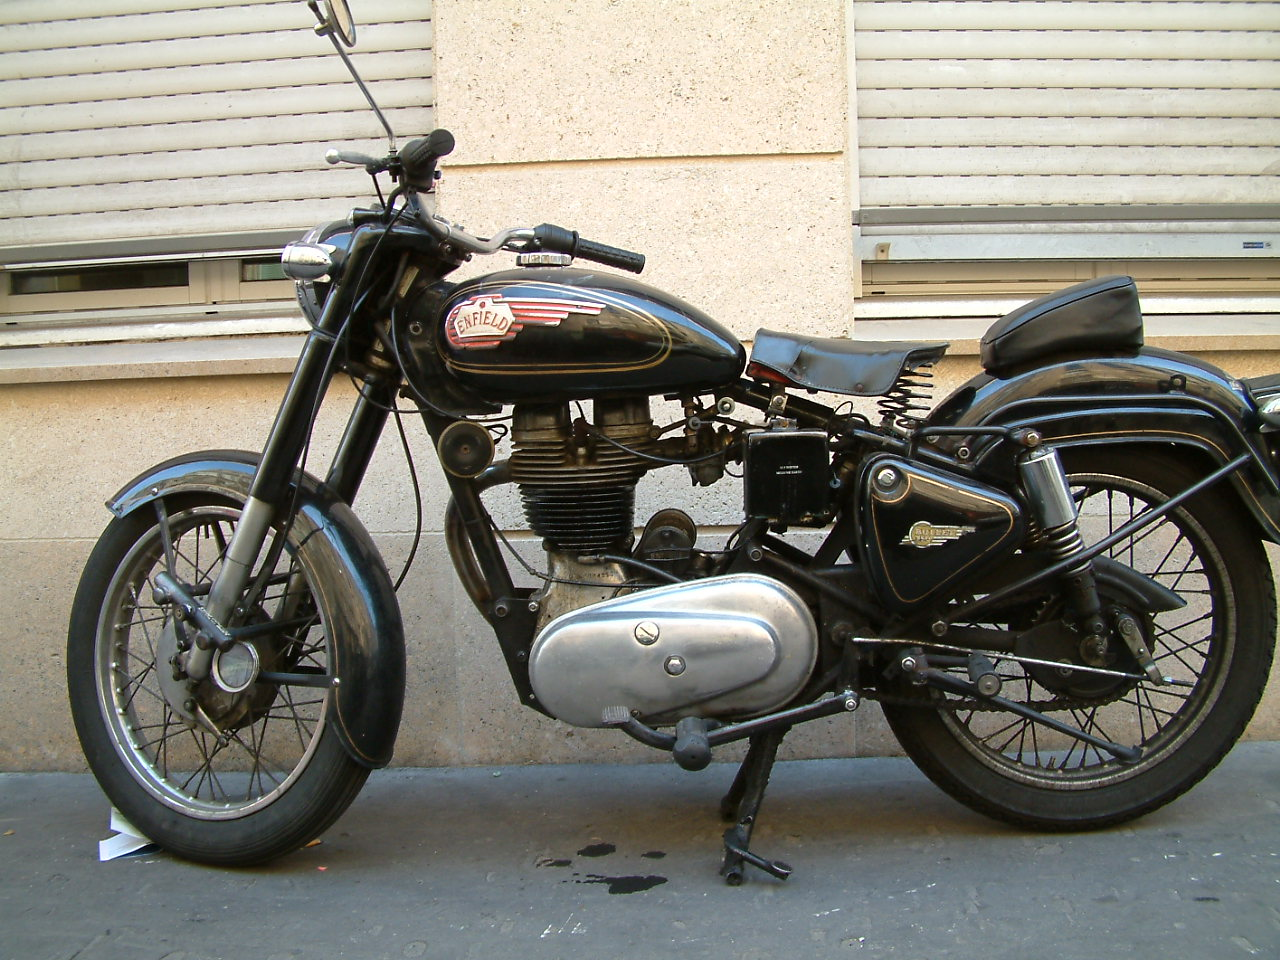 Royal Enfield Bullet 350 Army 1989 images #122465